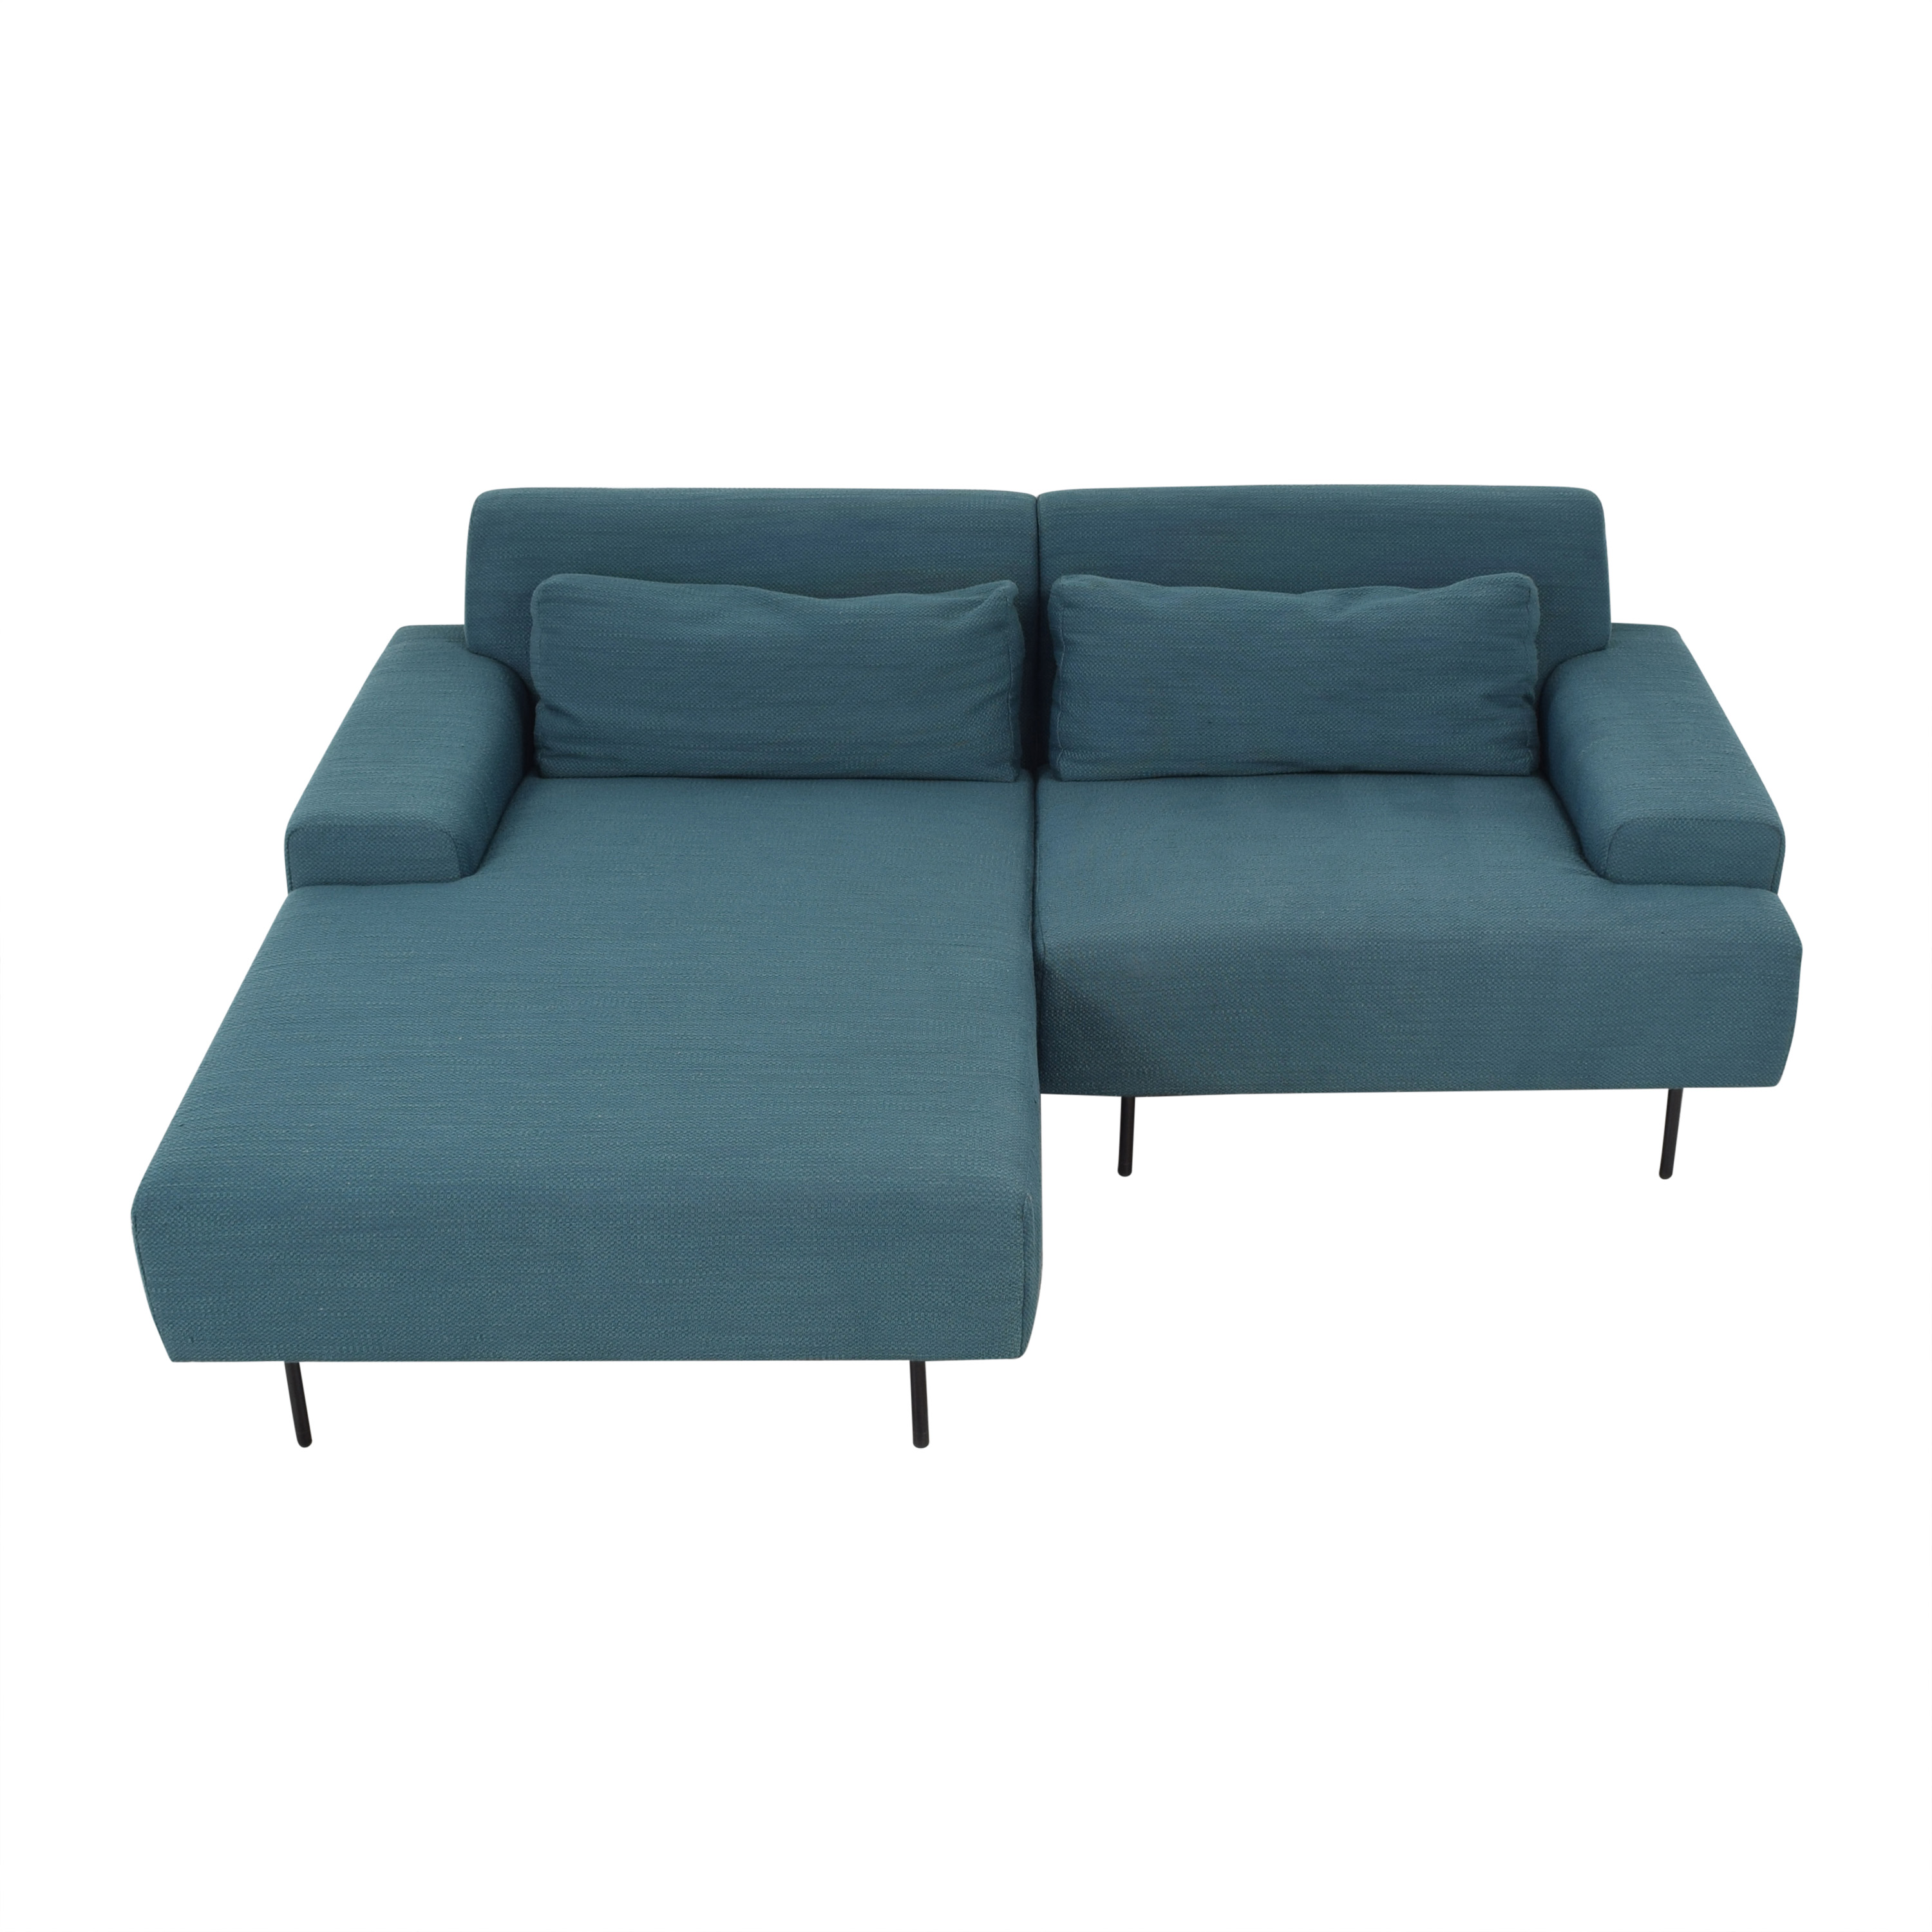 West Elm West Elm Beckham Chaise Sectional Sofa ct